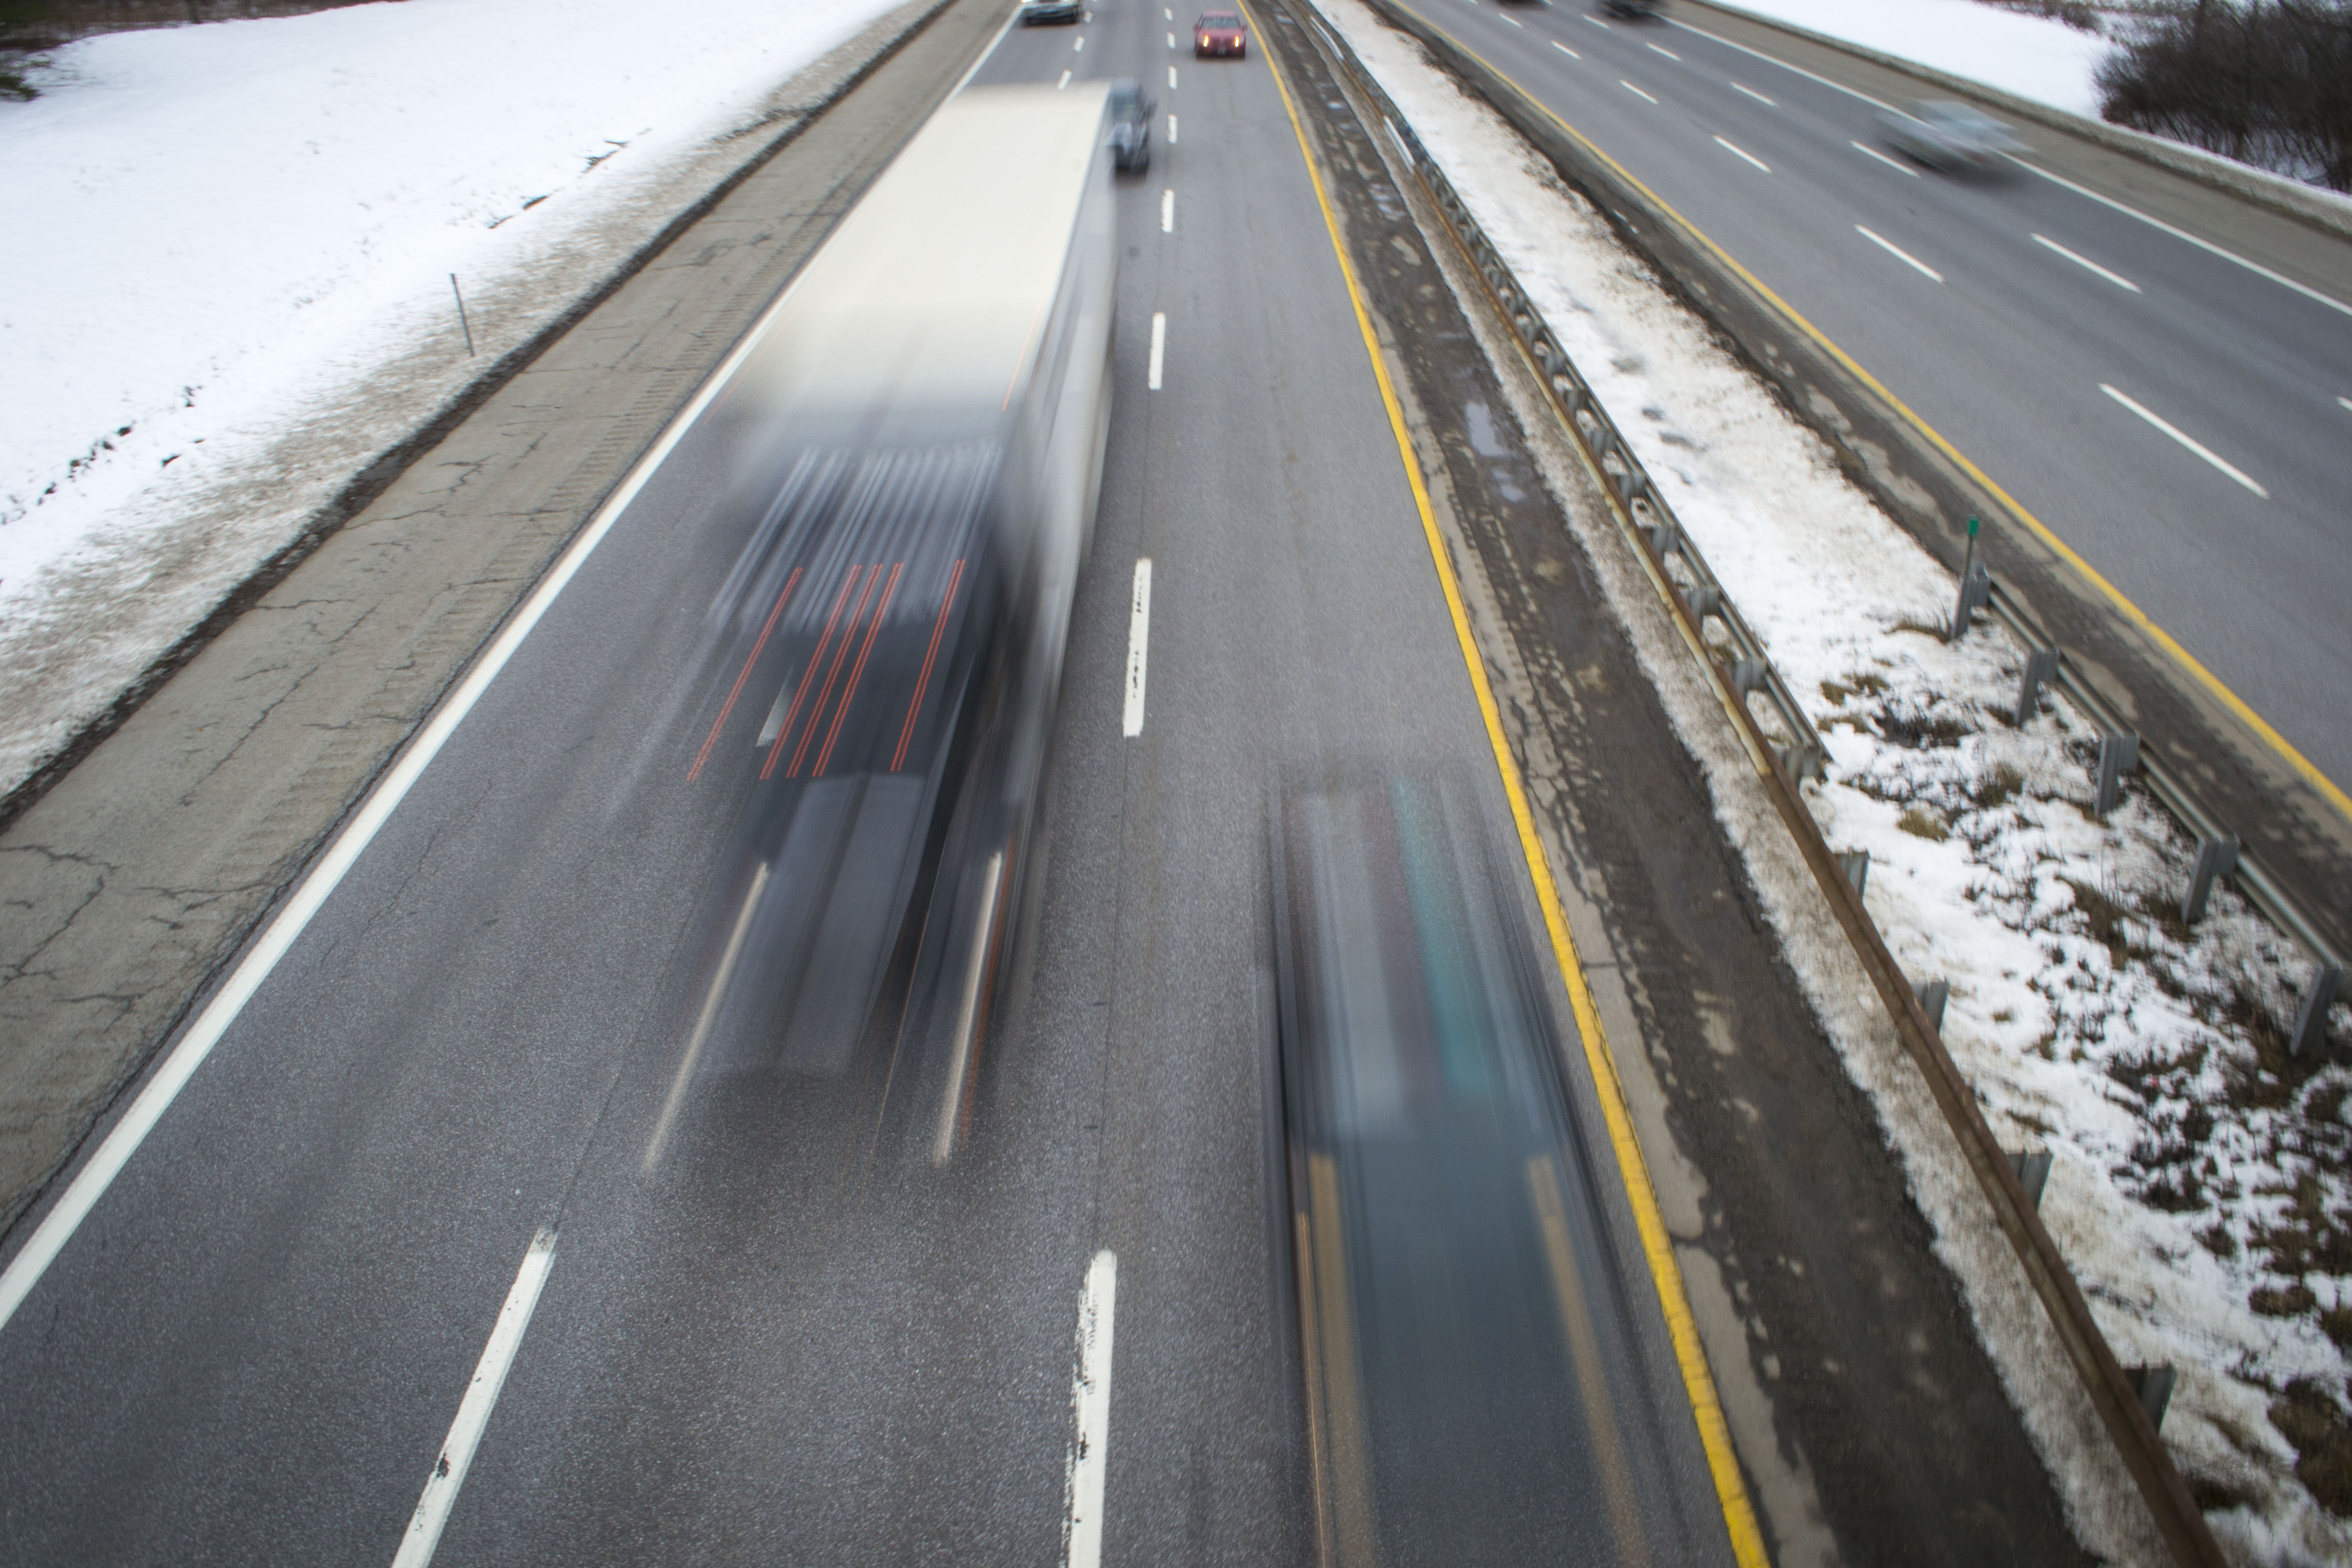 A tractor-trailer truck zooms down the Maine Turnpike in this photo taken from the South Street bridge in Biddeford in December. On Tuesday, Speaker of the Maine House, Sara Gideon, introduced new legislation to equip truckers with the tools to reduce human trafficking in Maine. ALAN BENNETT/Journal Tribune